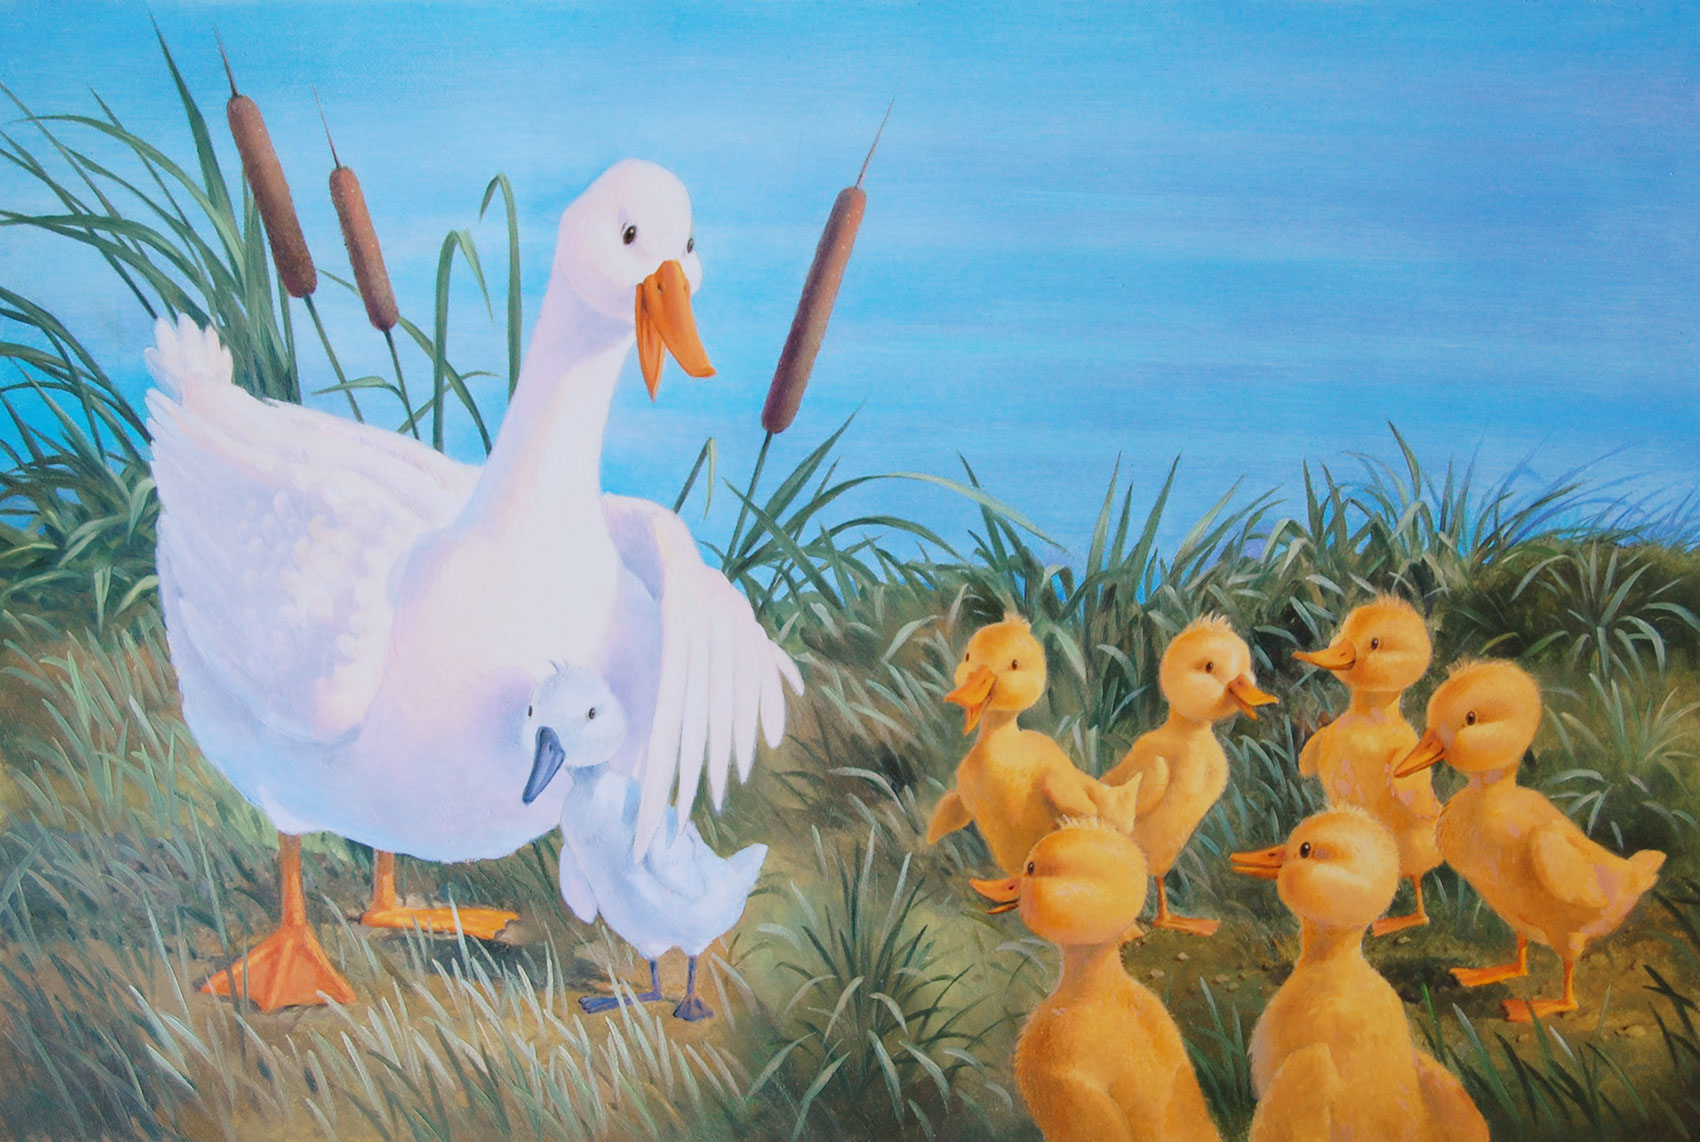 illustration-Animals and Nature_ducklings-Mike Jaroszko